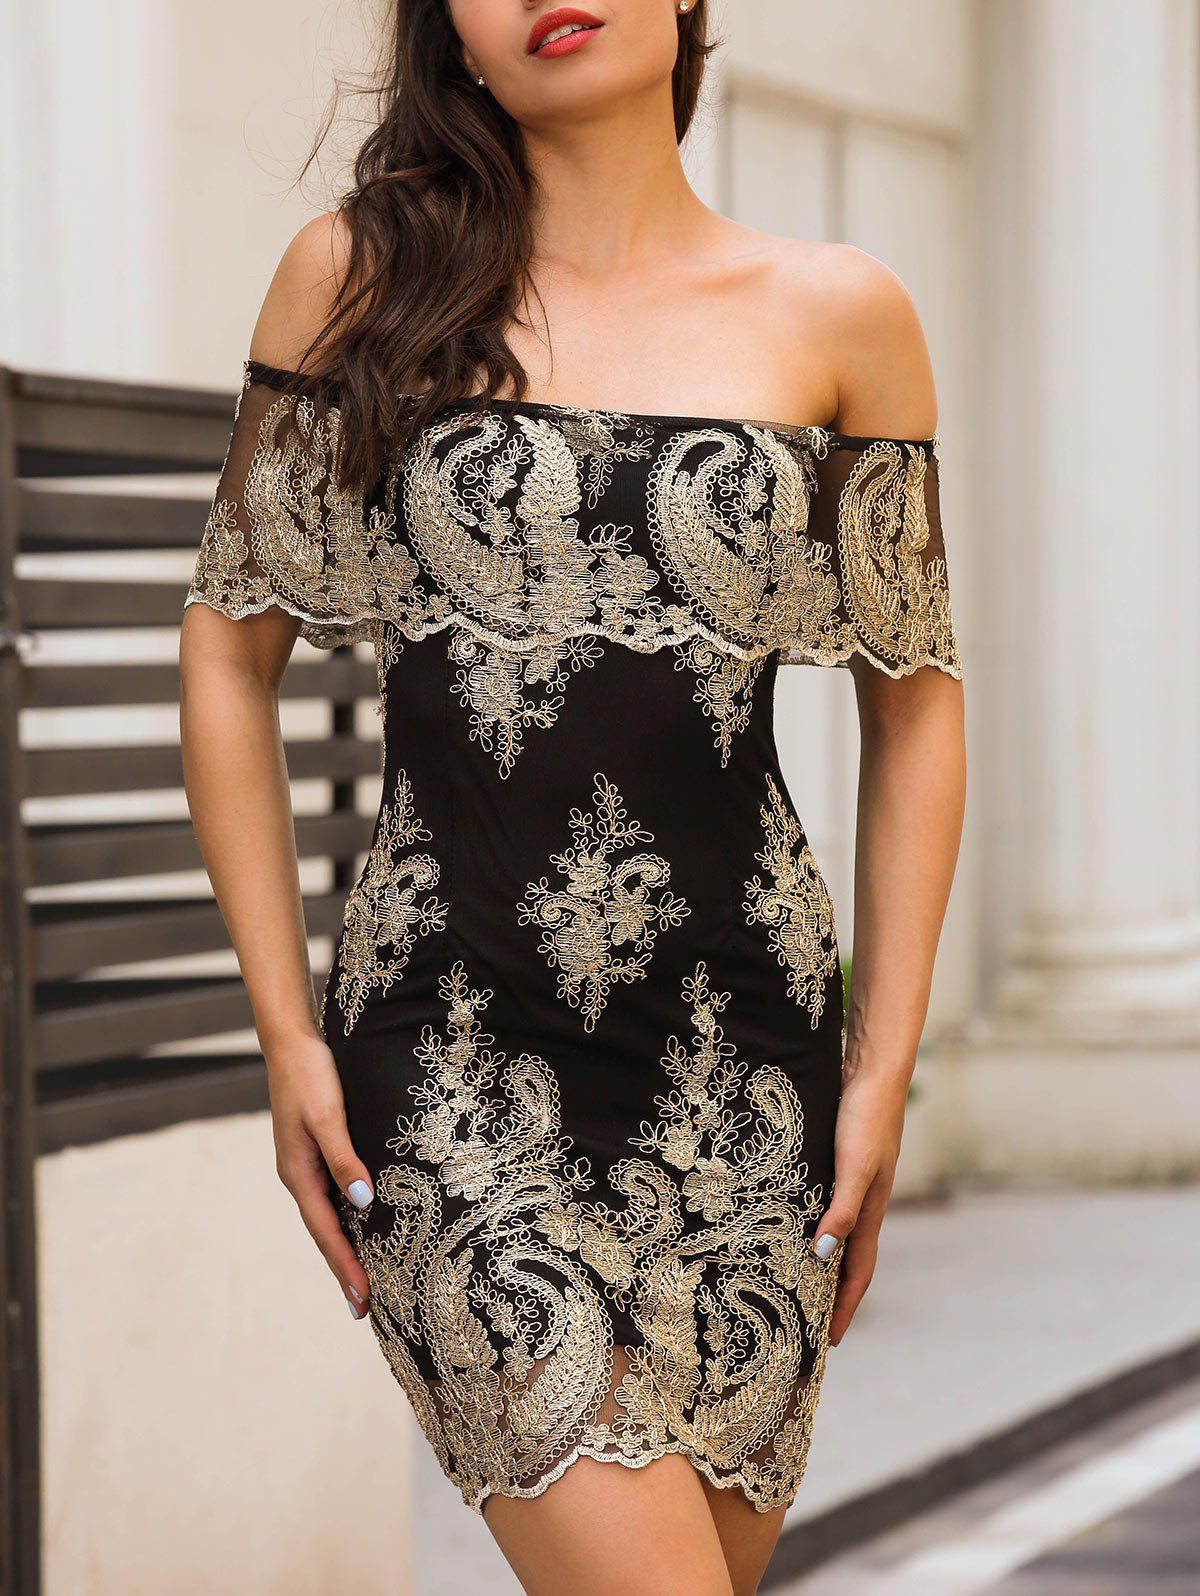 Off The Shoulder Embroidered Bodycon DressWOMEN<br><br>Size: S; Color: BLACK; Style: Brief; Material: Polyester,Spandex; Silhouette: Bodycon; Dresses Length: Mini; Neckline: Off The Shoulder; Sleeve Length: Short Sleeves; Embellishment: Embroidery; Pattern Type: Others; With Belt: No; Season: Summer; Weight: 0.3000kg; Package Contents: 1 x Dress;